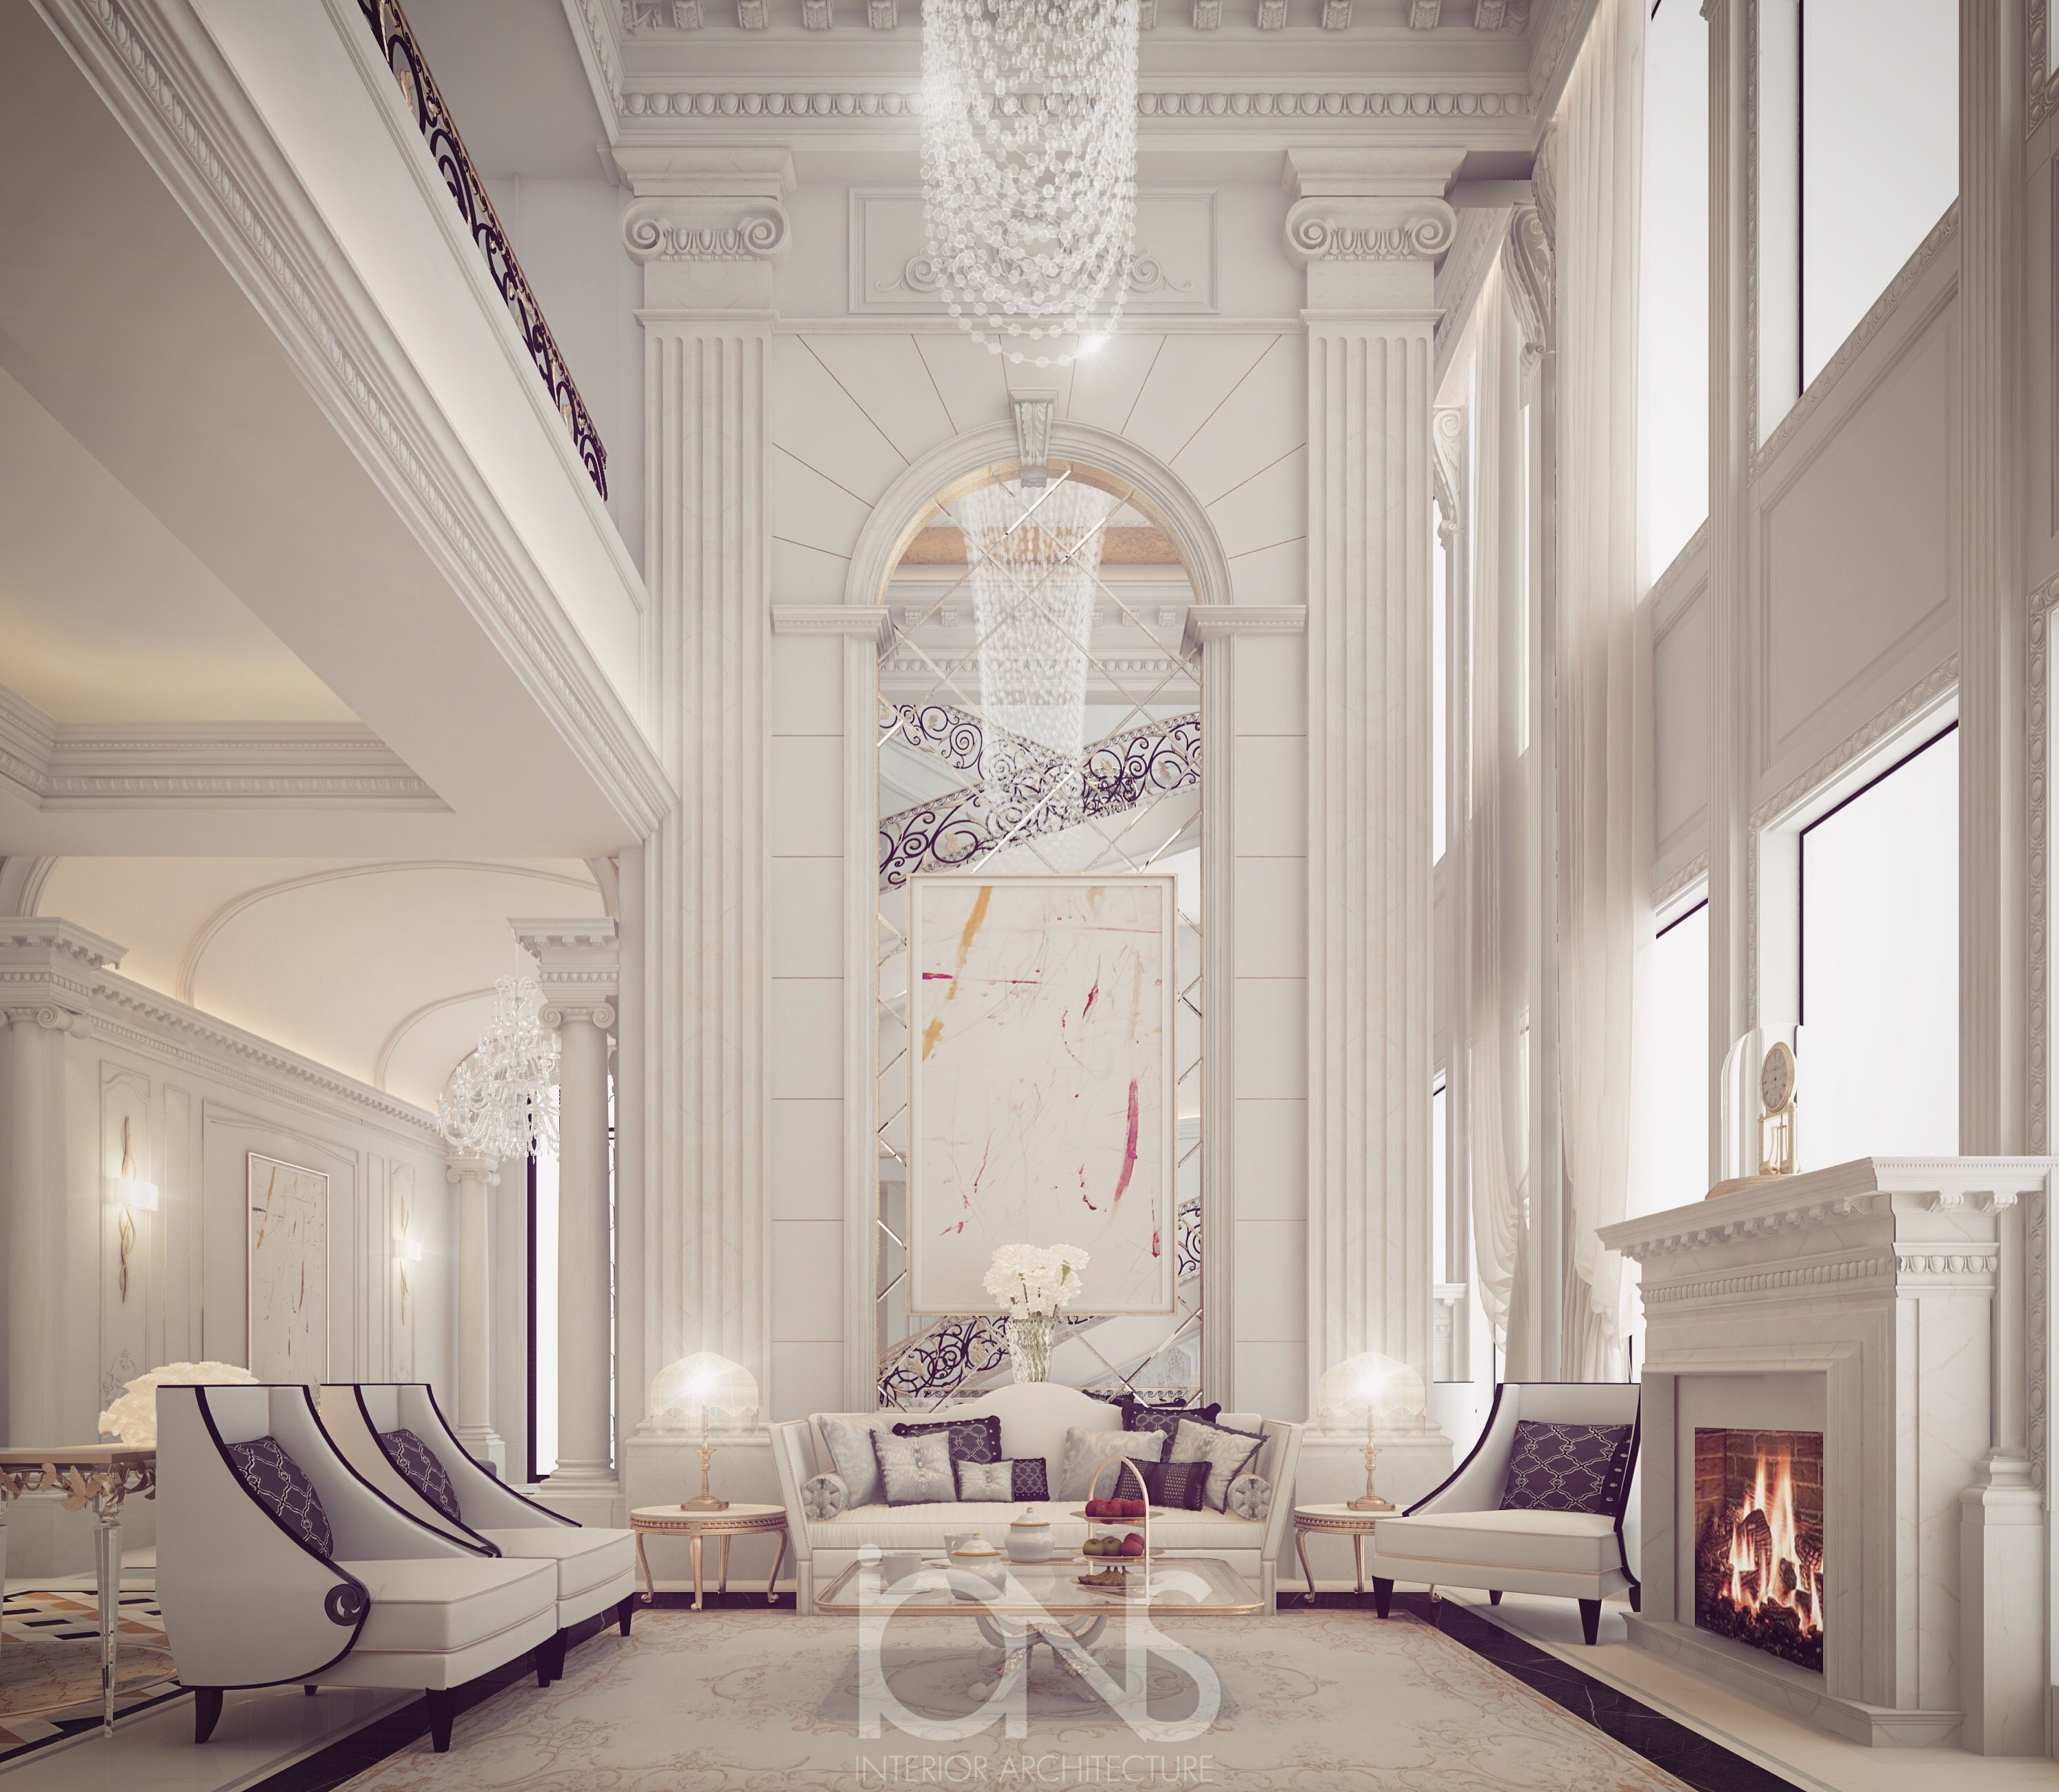 Hanging Chair Qatar Patio Recliner Lounge Fireplace Design Private Palace Doha